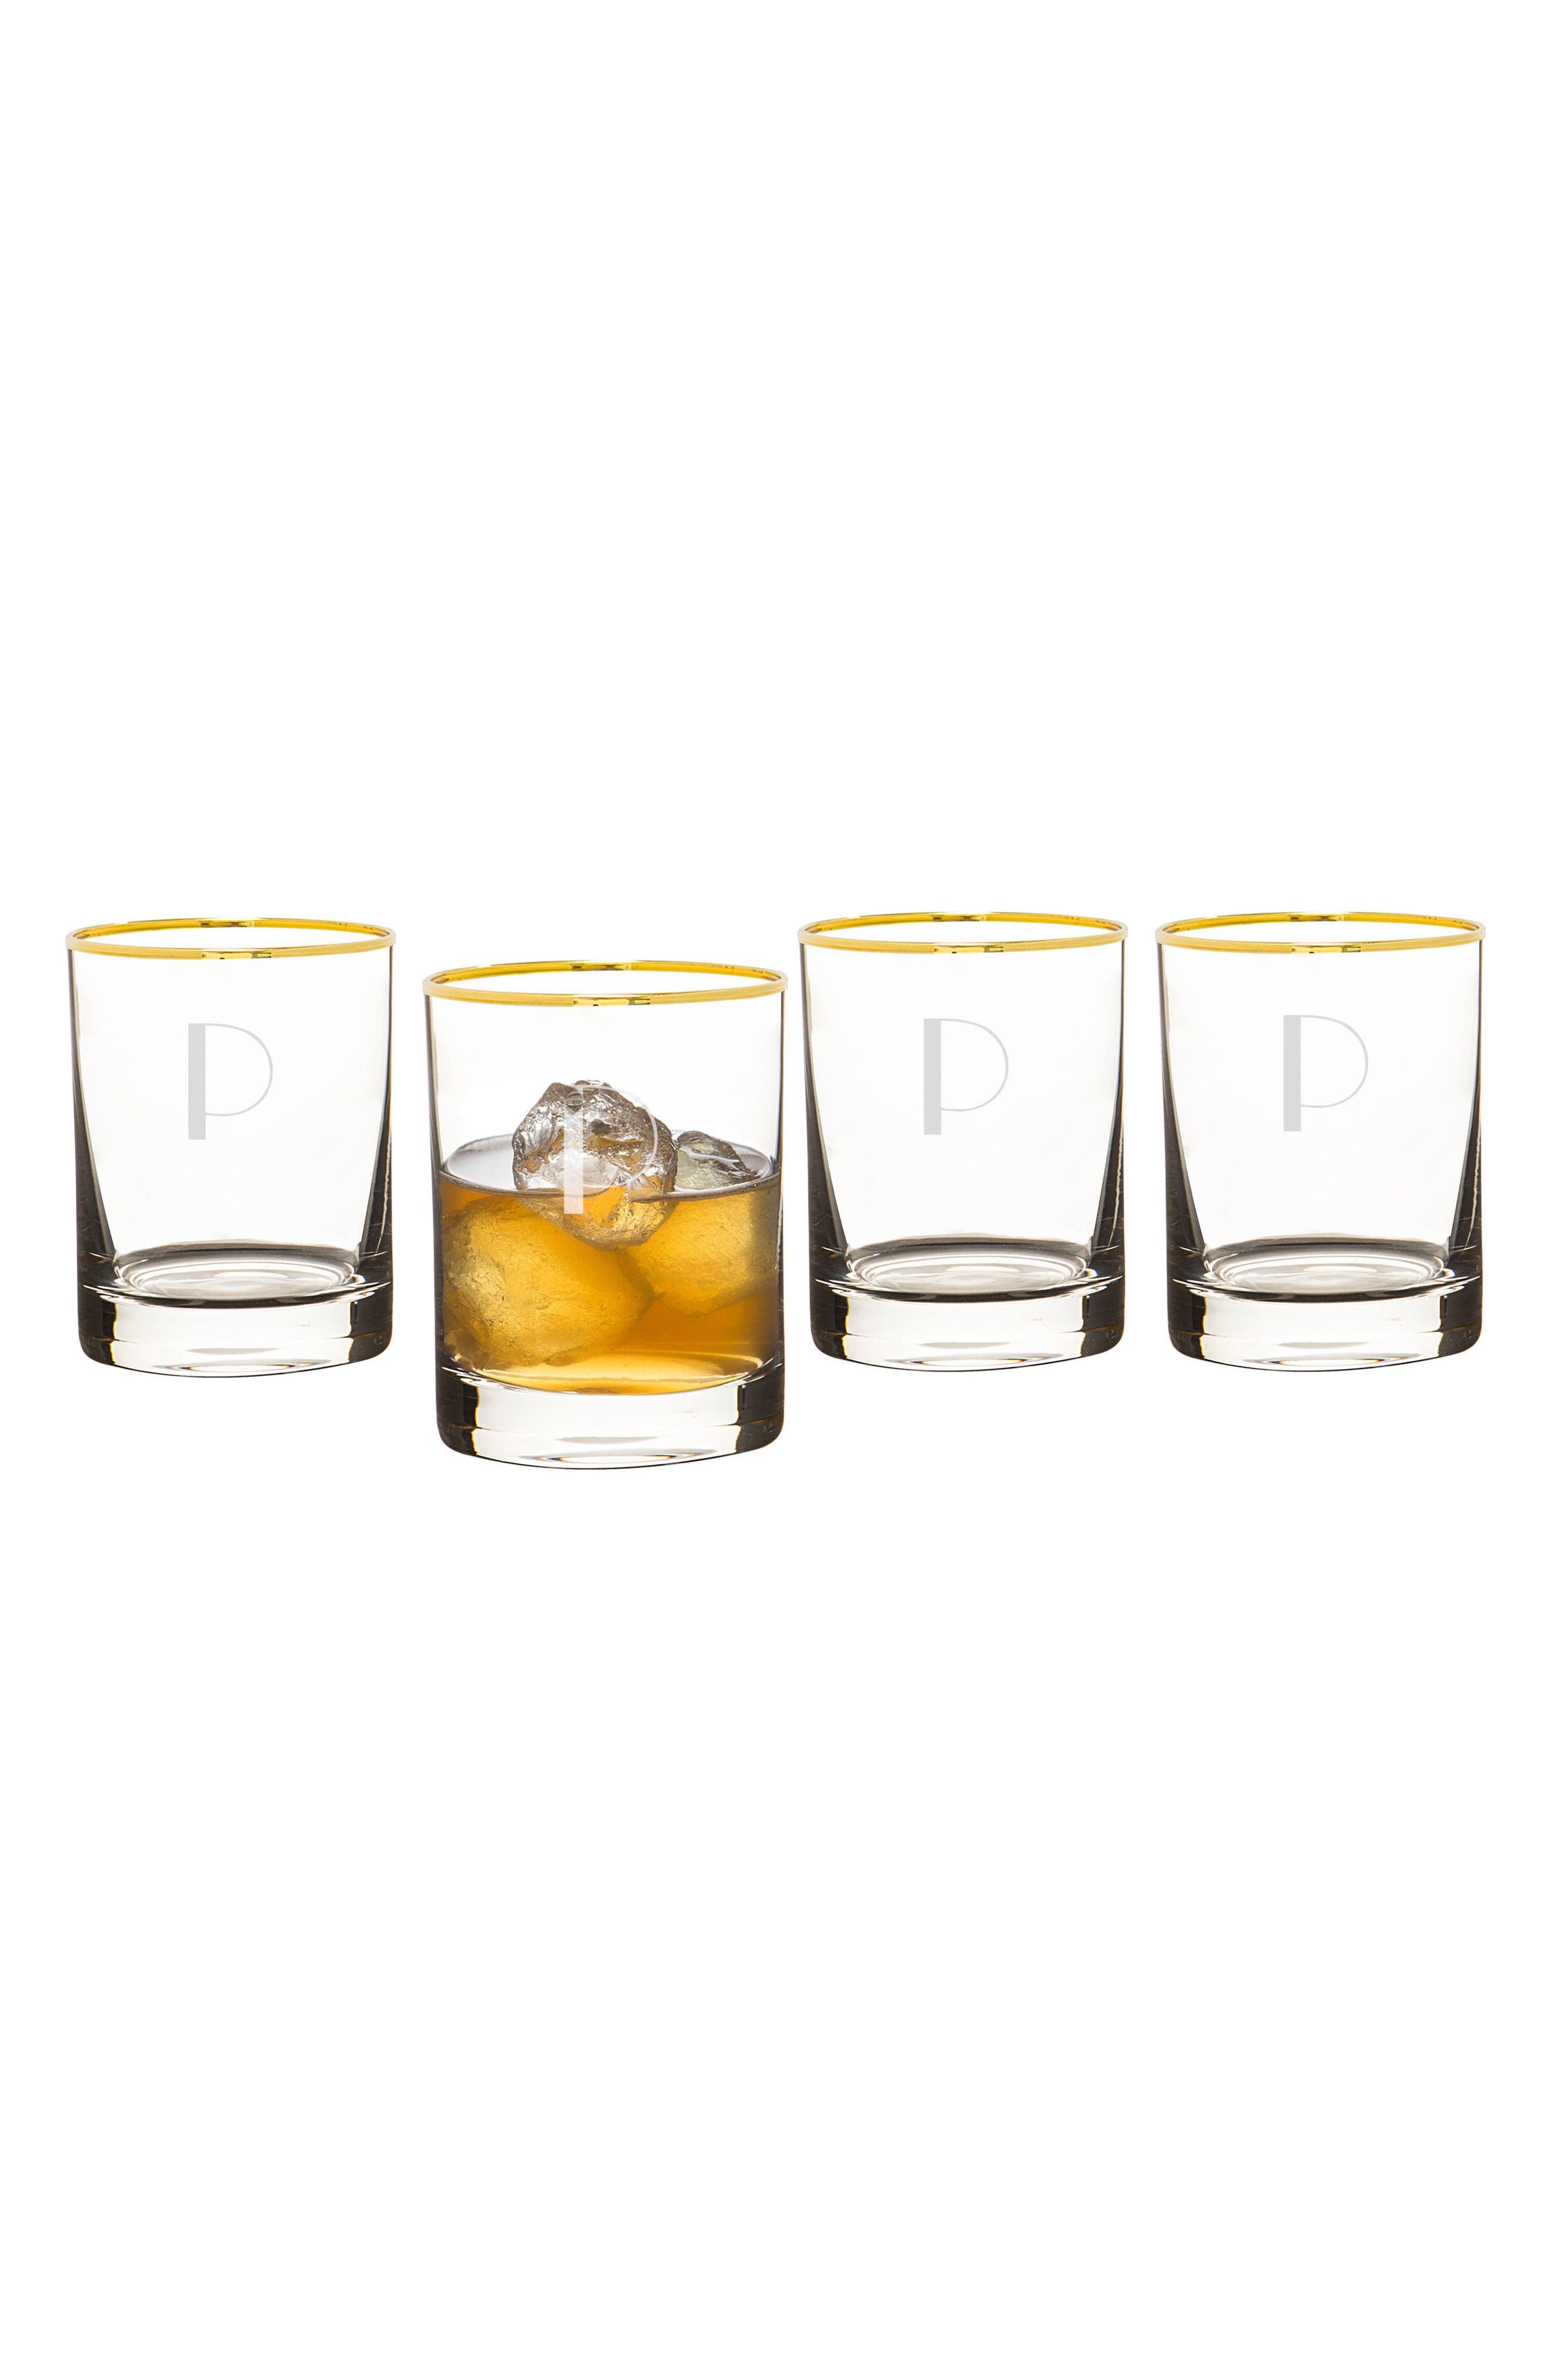 Monogram Set of 4 Double Old Fashioned Glasses,                             Main thumbnail 17, color,